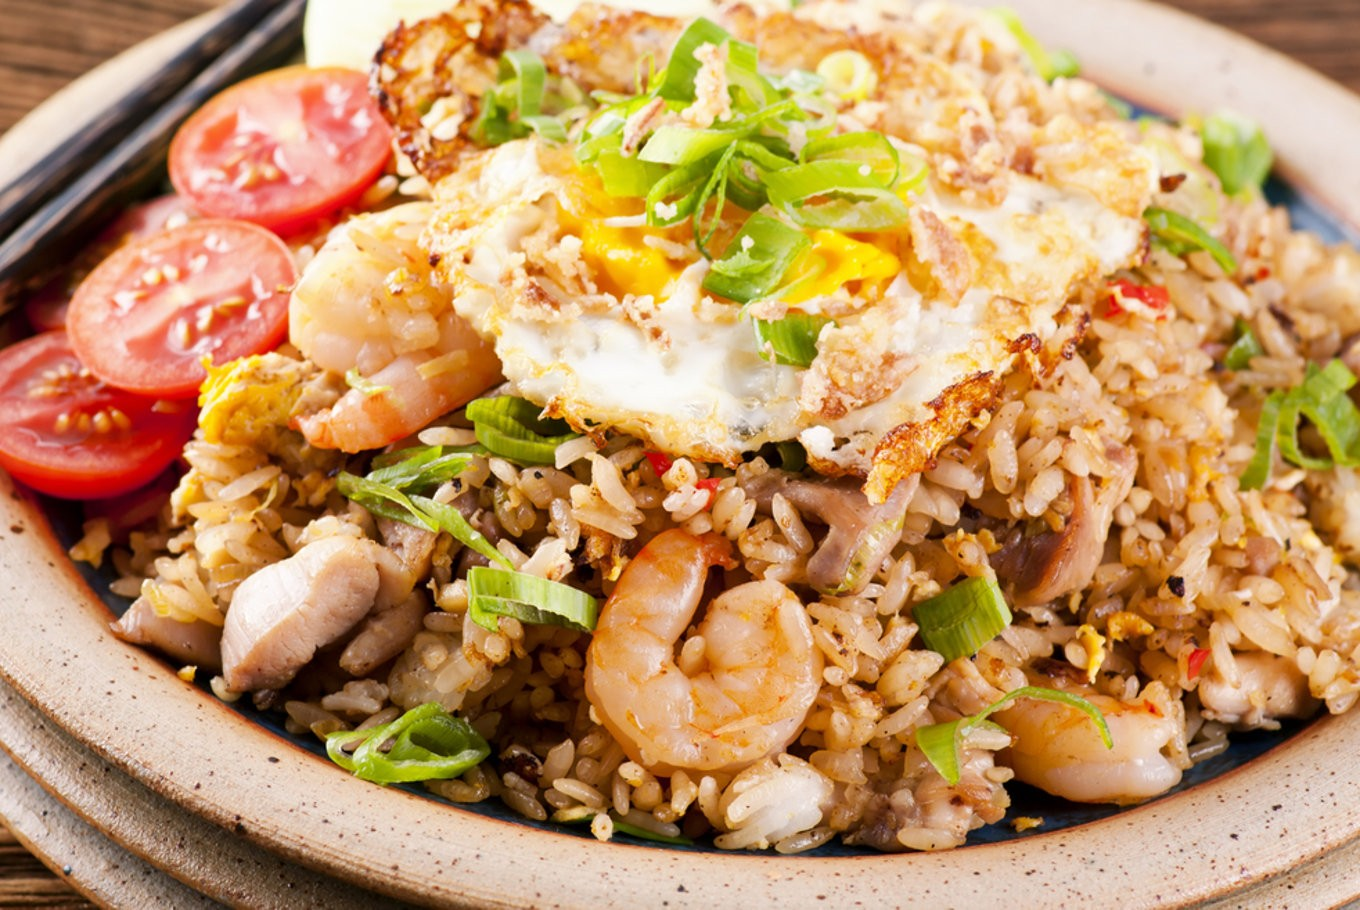 Most delicious 'nasi goreng gila' in Jakarta - Food - The ...